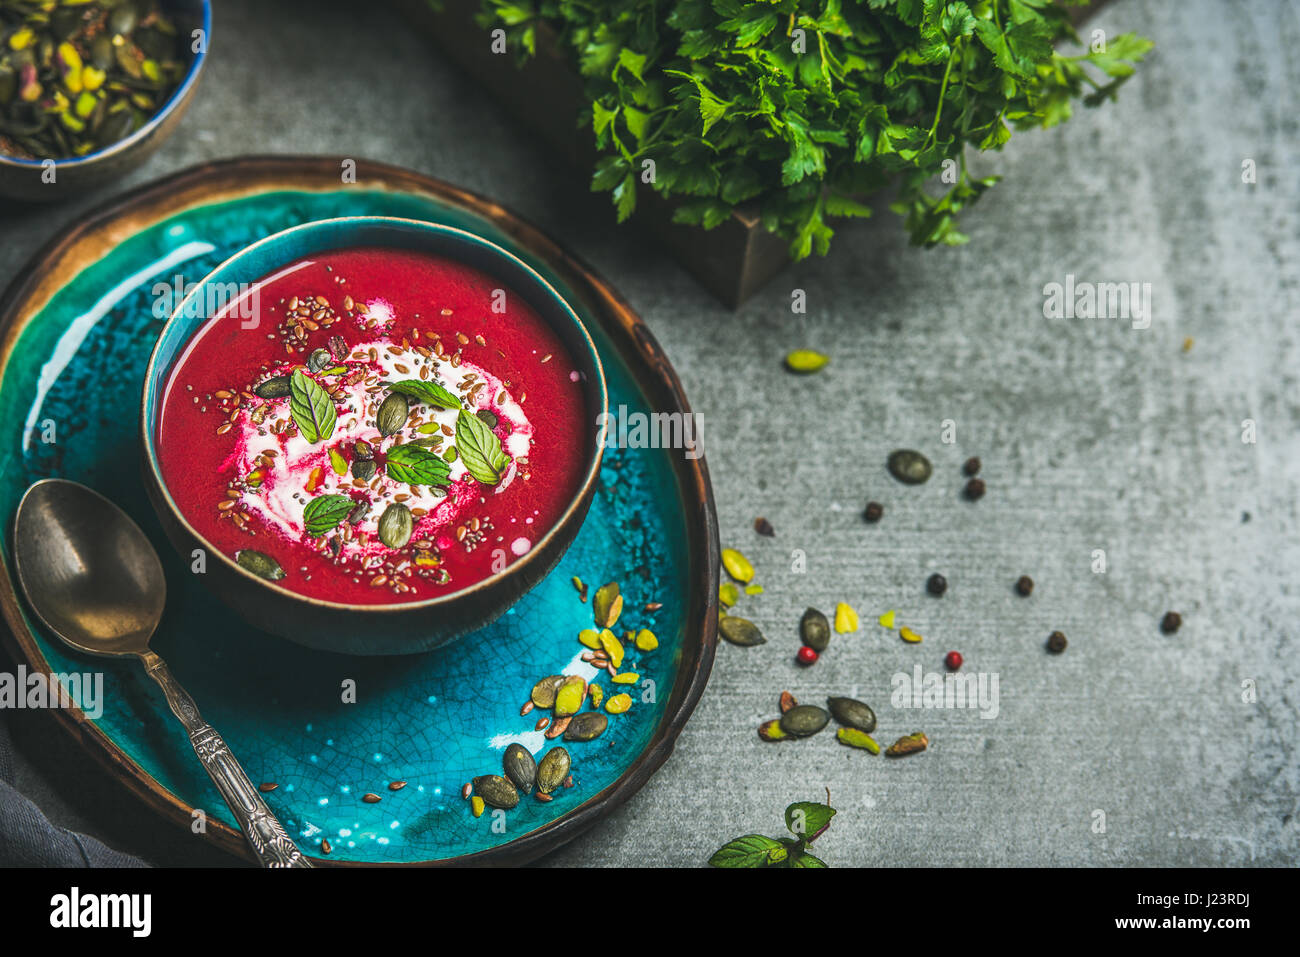 Spring beetroot soup with mint and seeds, copy space Stock Photo